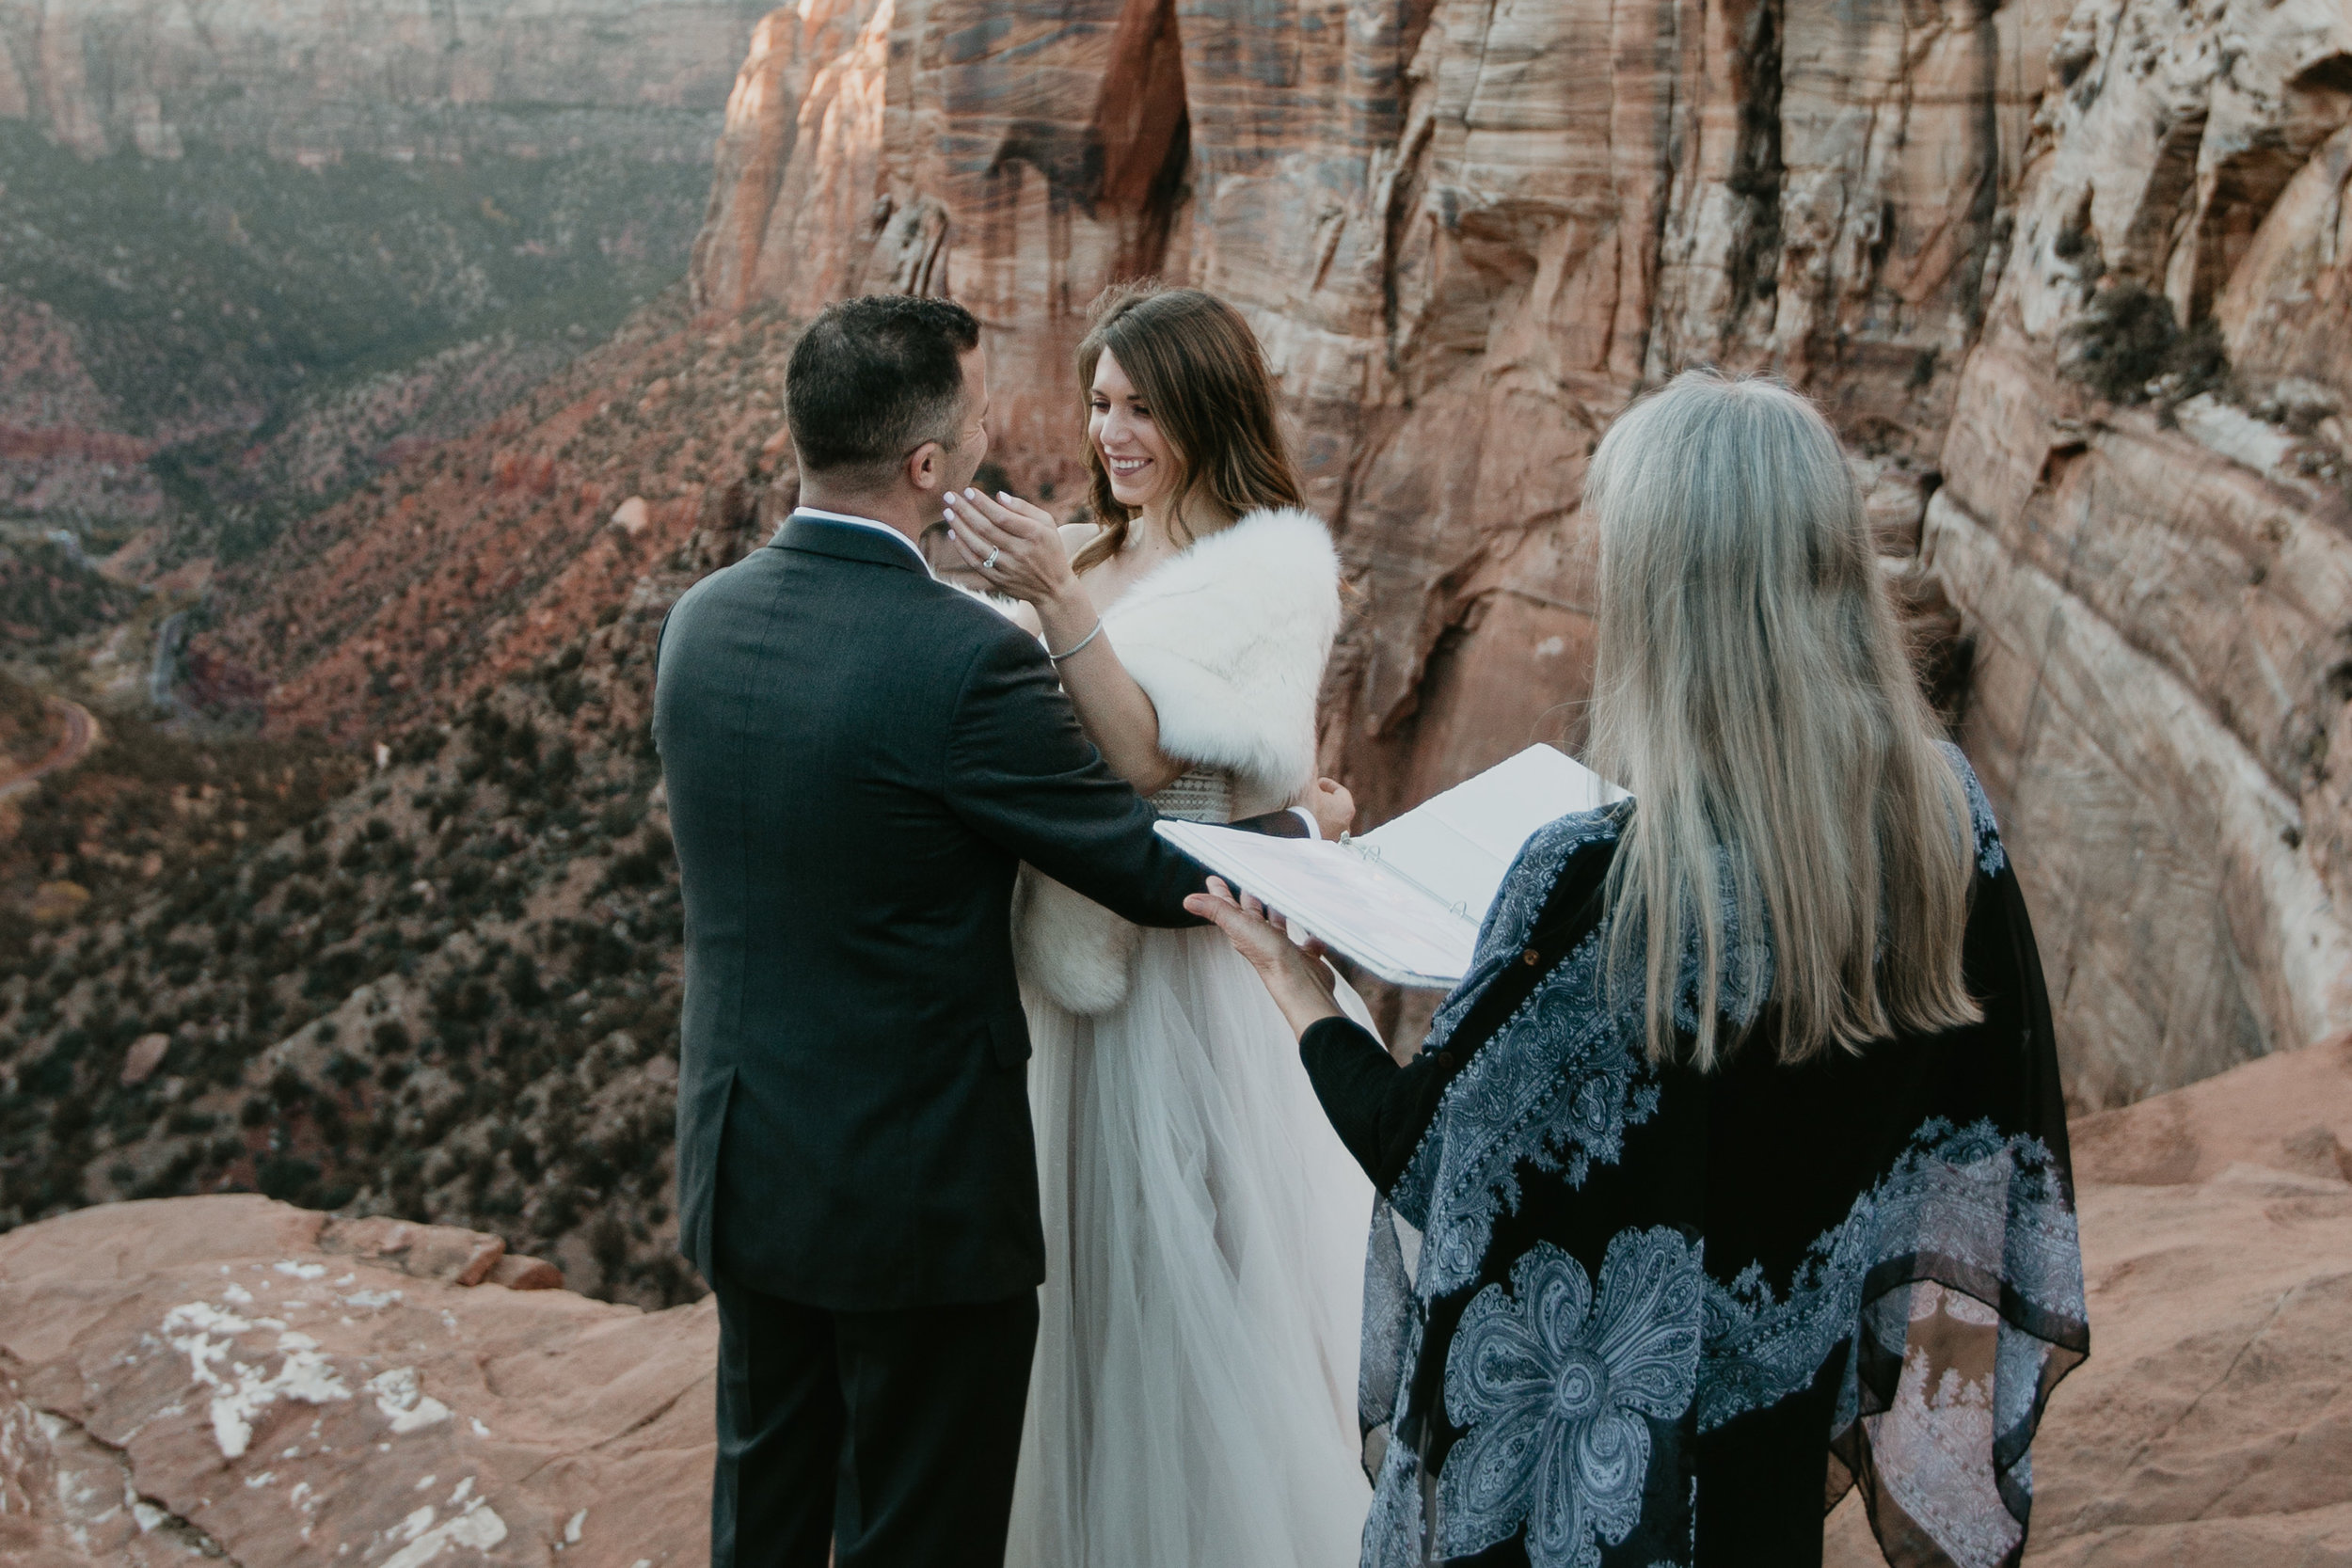 nicole-daacke-photography-zion-national-park-elopement-photographer-canyon-overlook-trail-elope-hiking-adventure-wedding-photos-fall-utah-red-rock-canyon-stgeorge-eloping-photographer-60.jpg